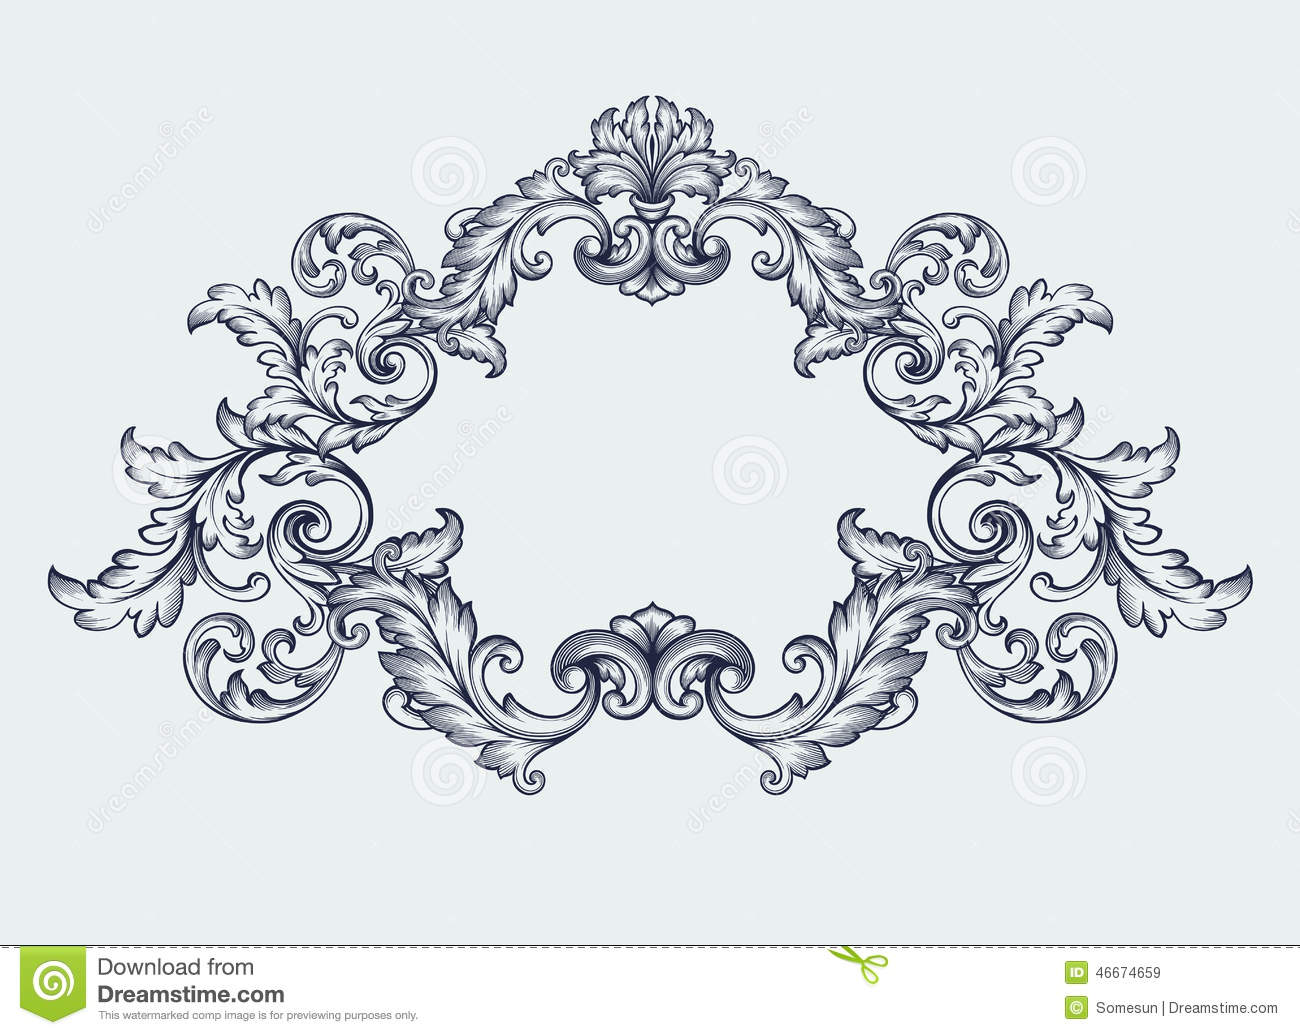 floral decorative element border and patterns vector.